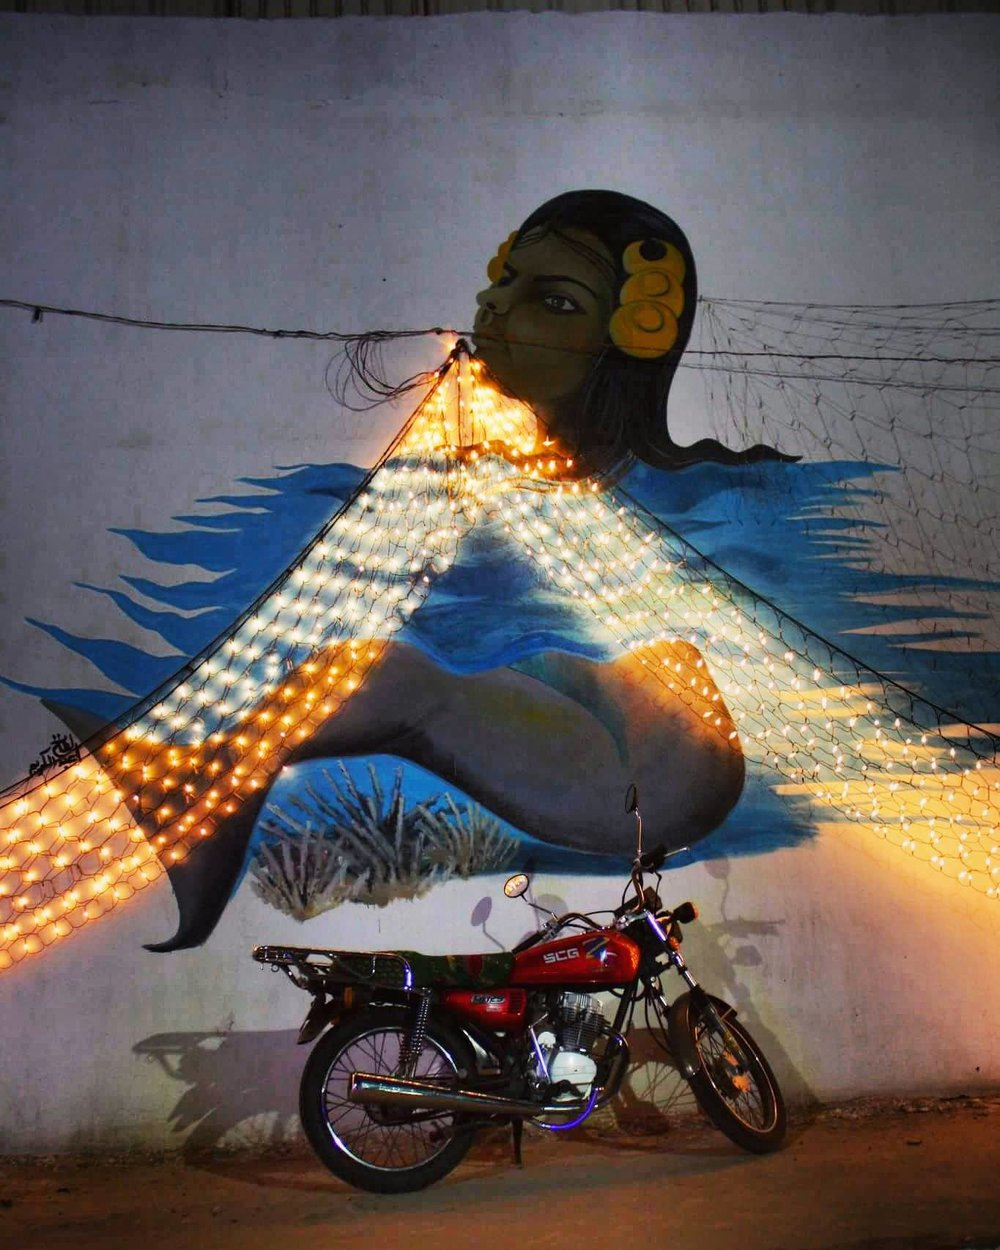 Motorcycle resting against a mural in a city fair in Port Sudan, Sudan. By Najla Salih.